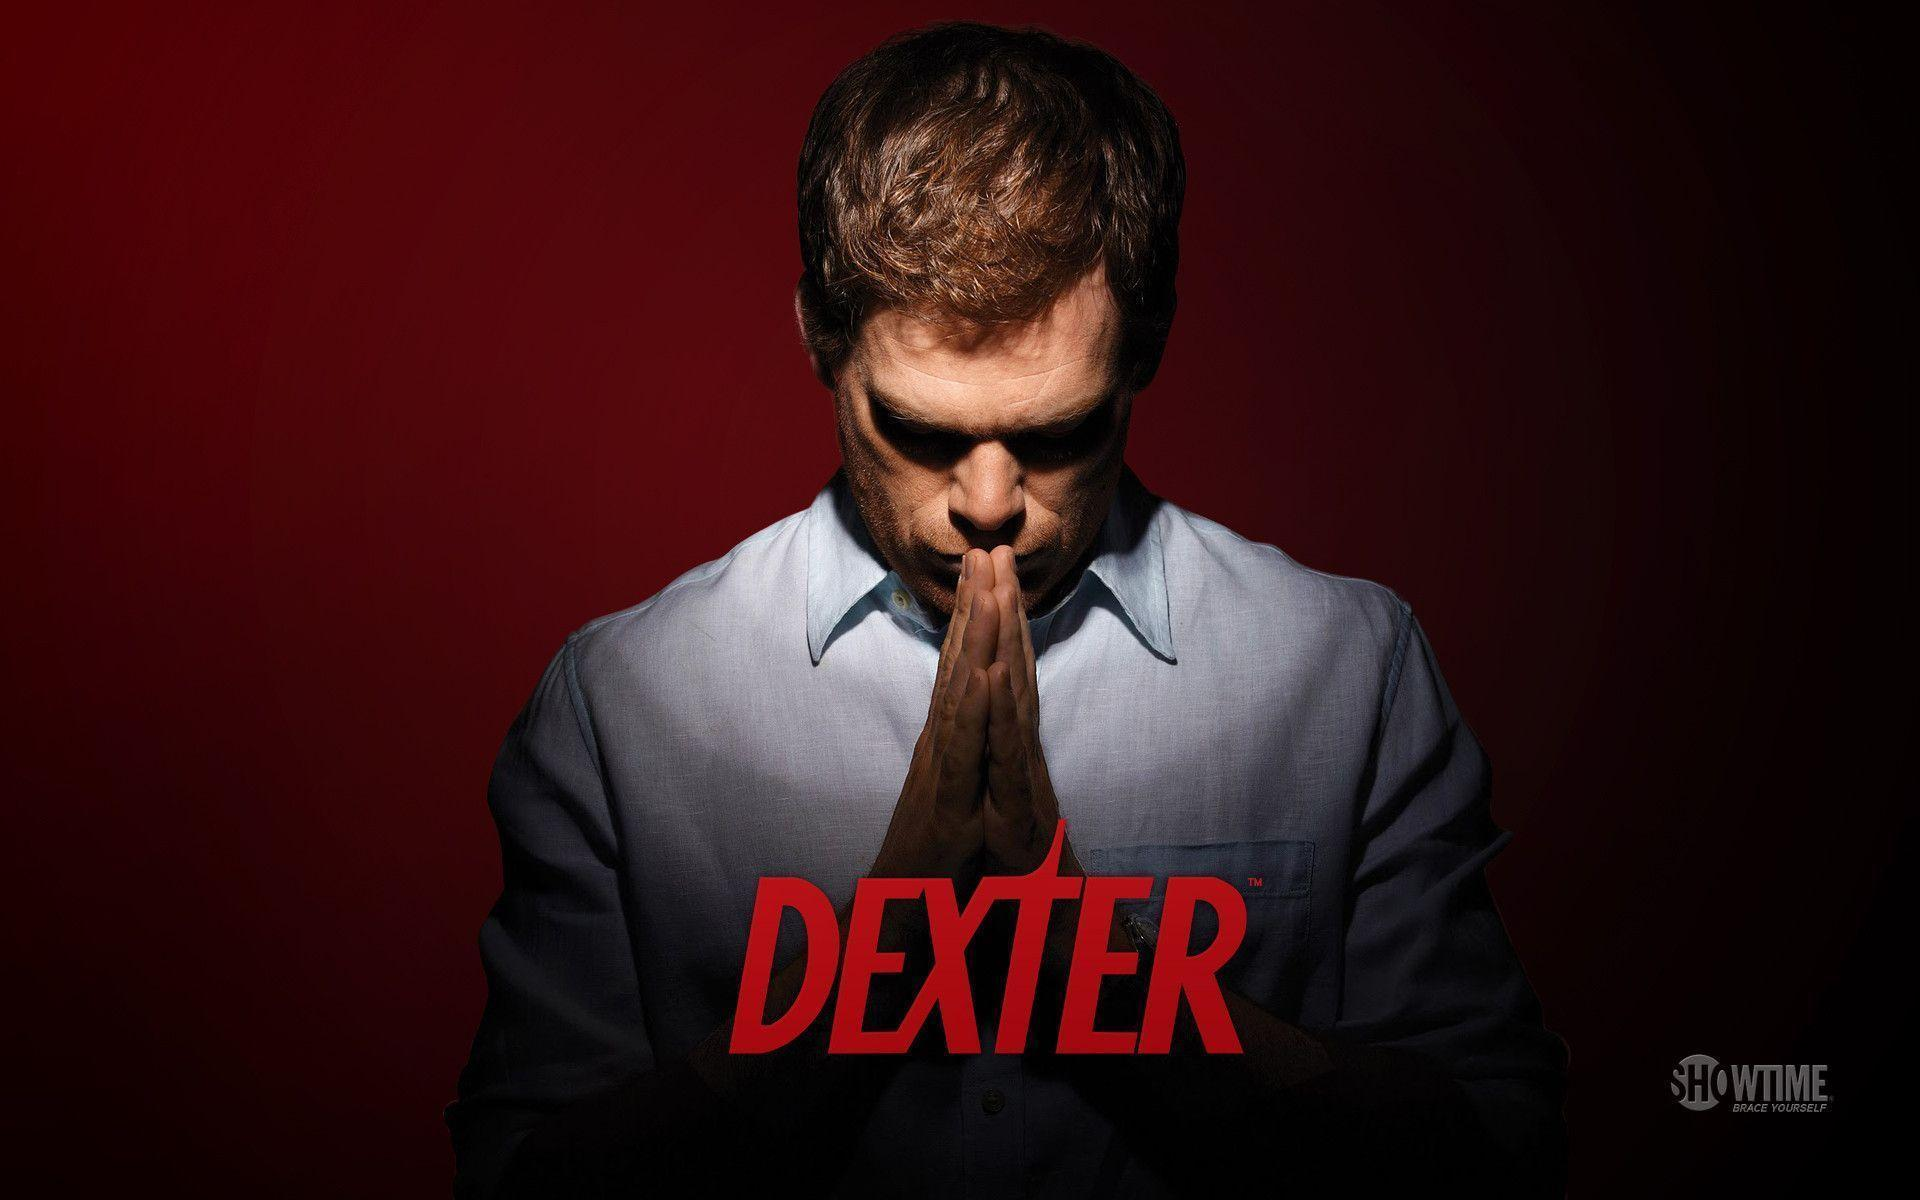 Dexter Season 8 Wallpaper HD 2 by iNicKeoN on DeviantArt